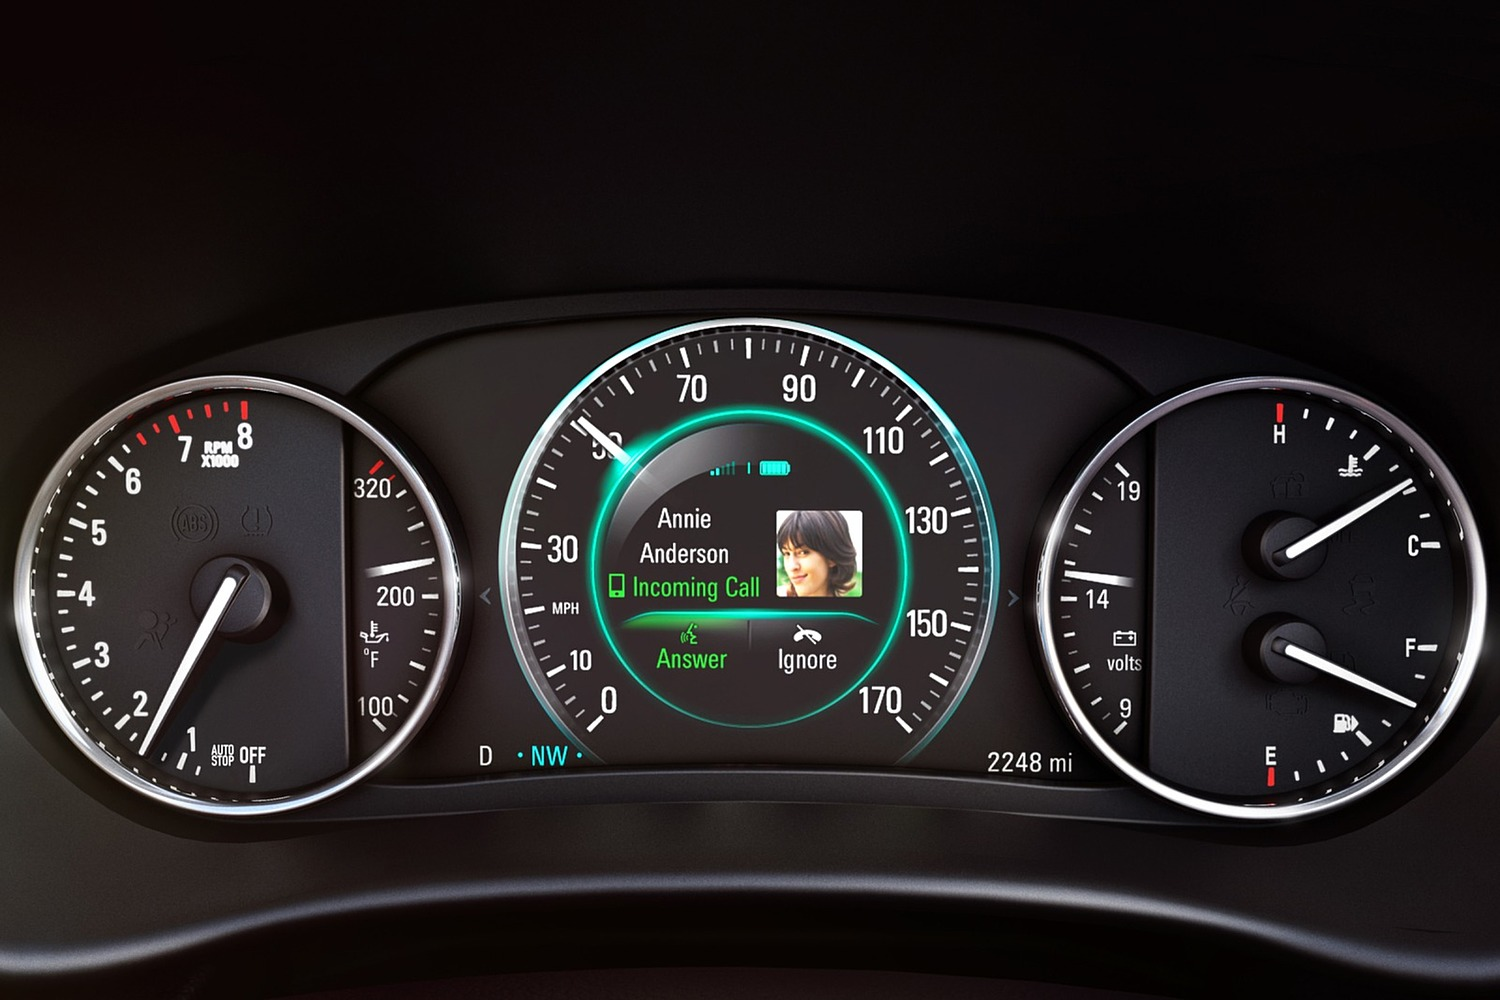 Buick Envision Premium II 4dr SUV Gauge Cluster (2016 model year shown)